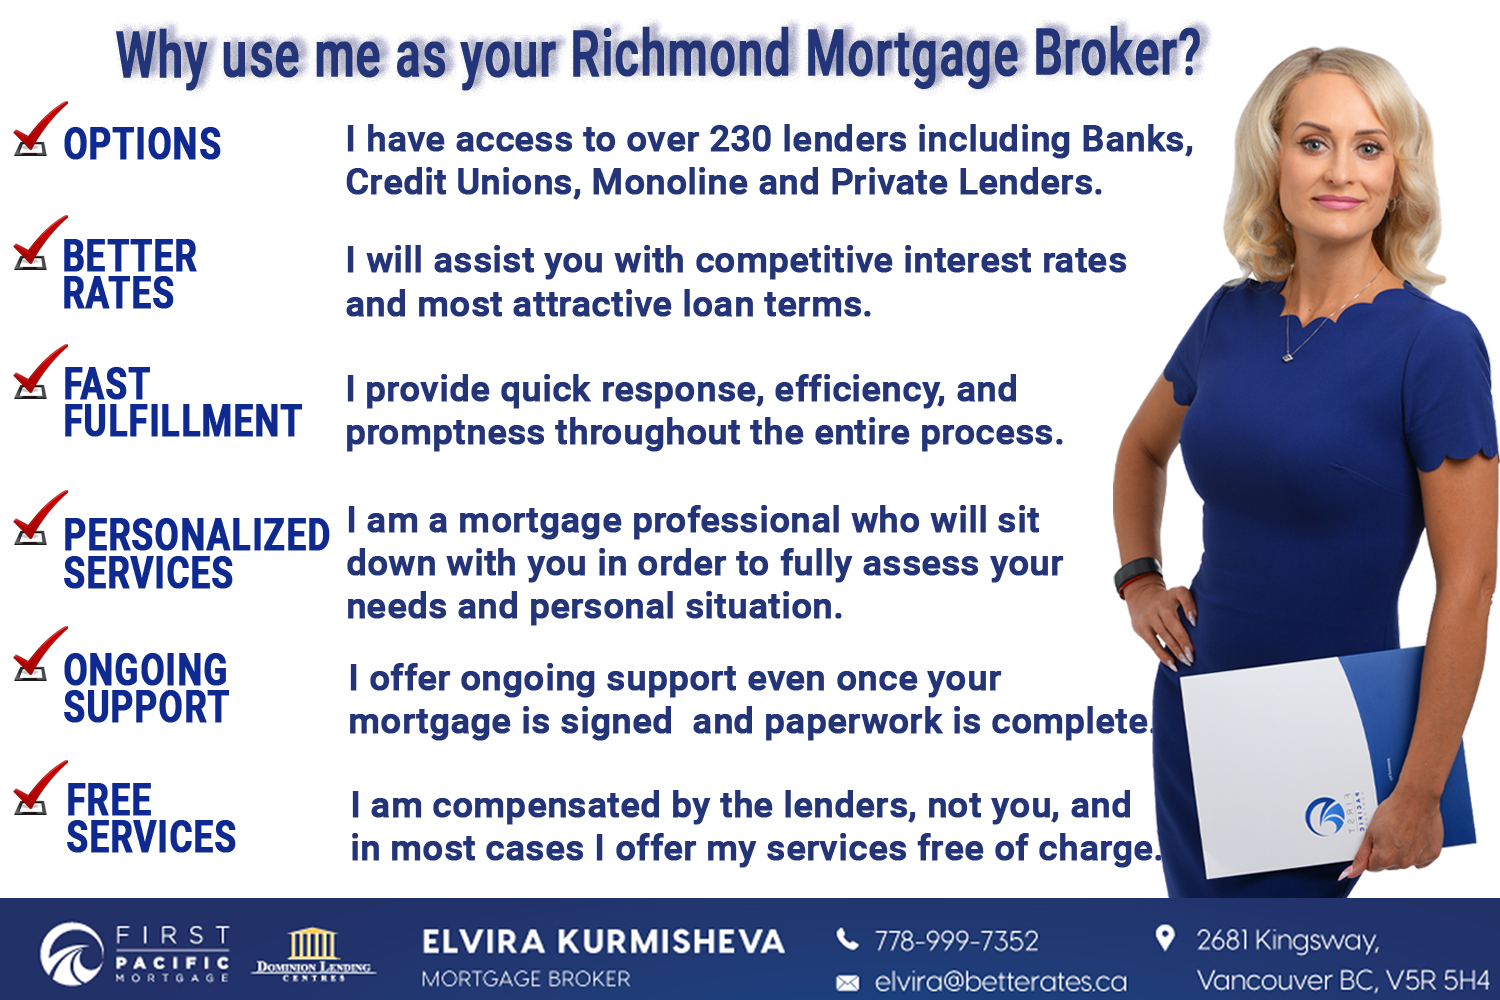 Picture of Richmond mortgage broker